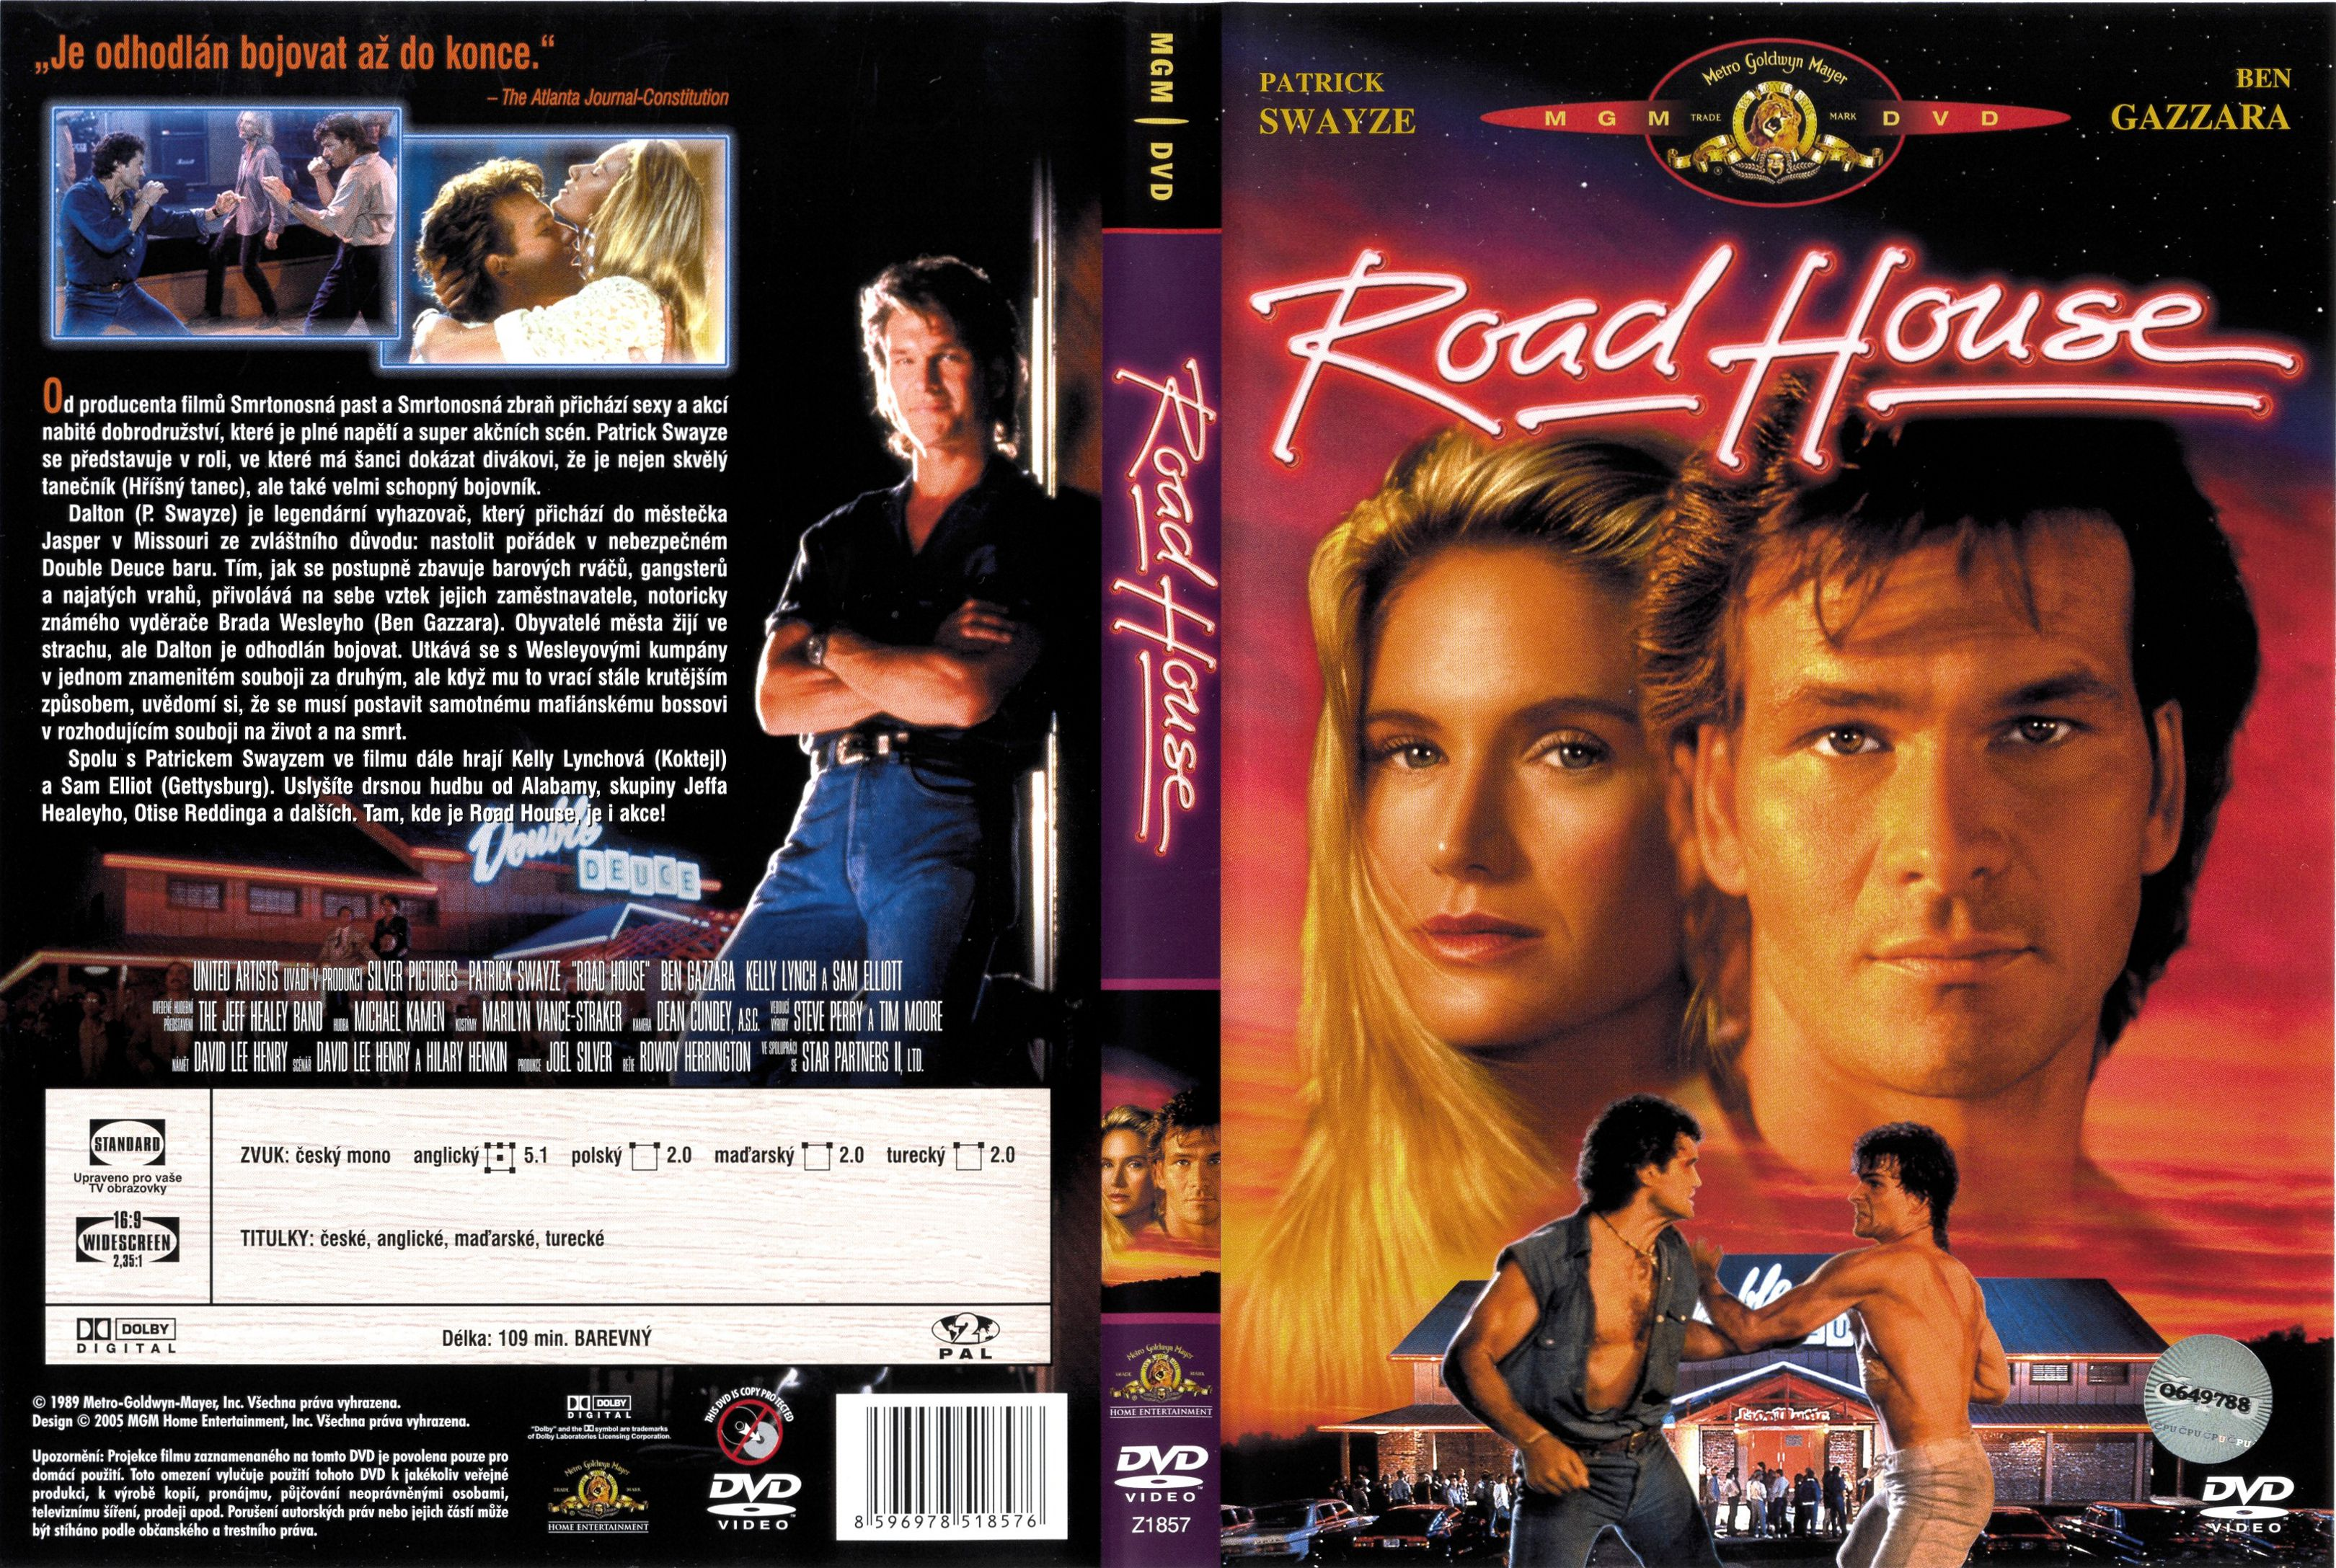 YARN | Yeah! | Road House (1989) | Video clips by quotes